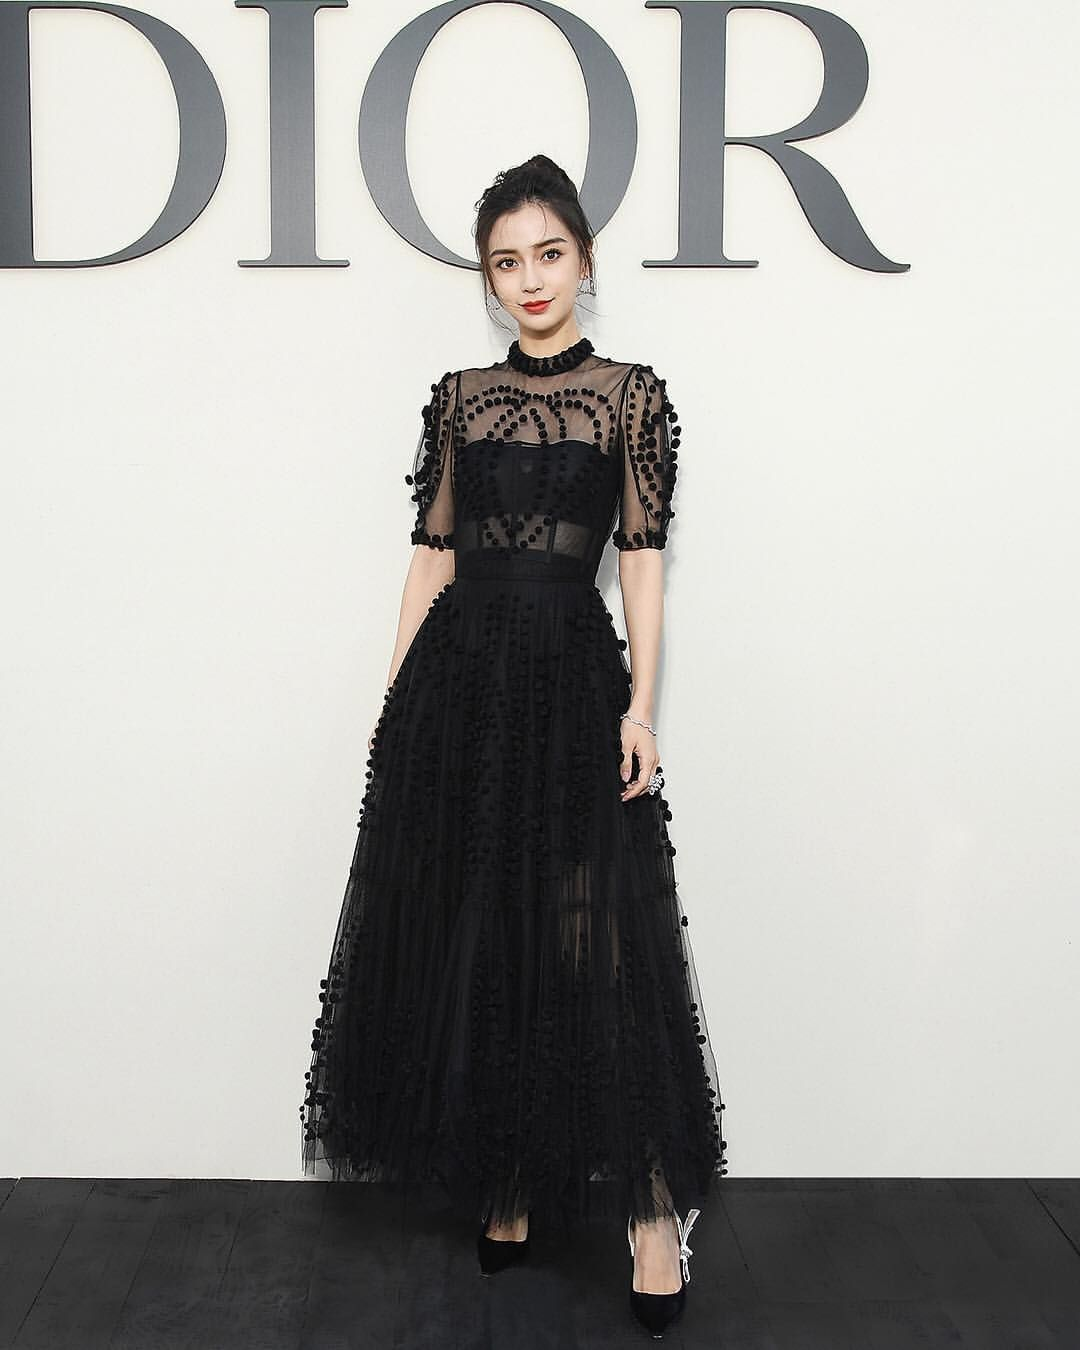 "designer fashion 5732d 5654c Dior Official (@dior) on Instagram: ""The actress and model ..."